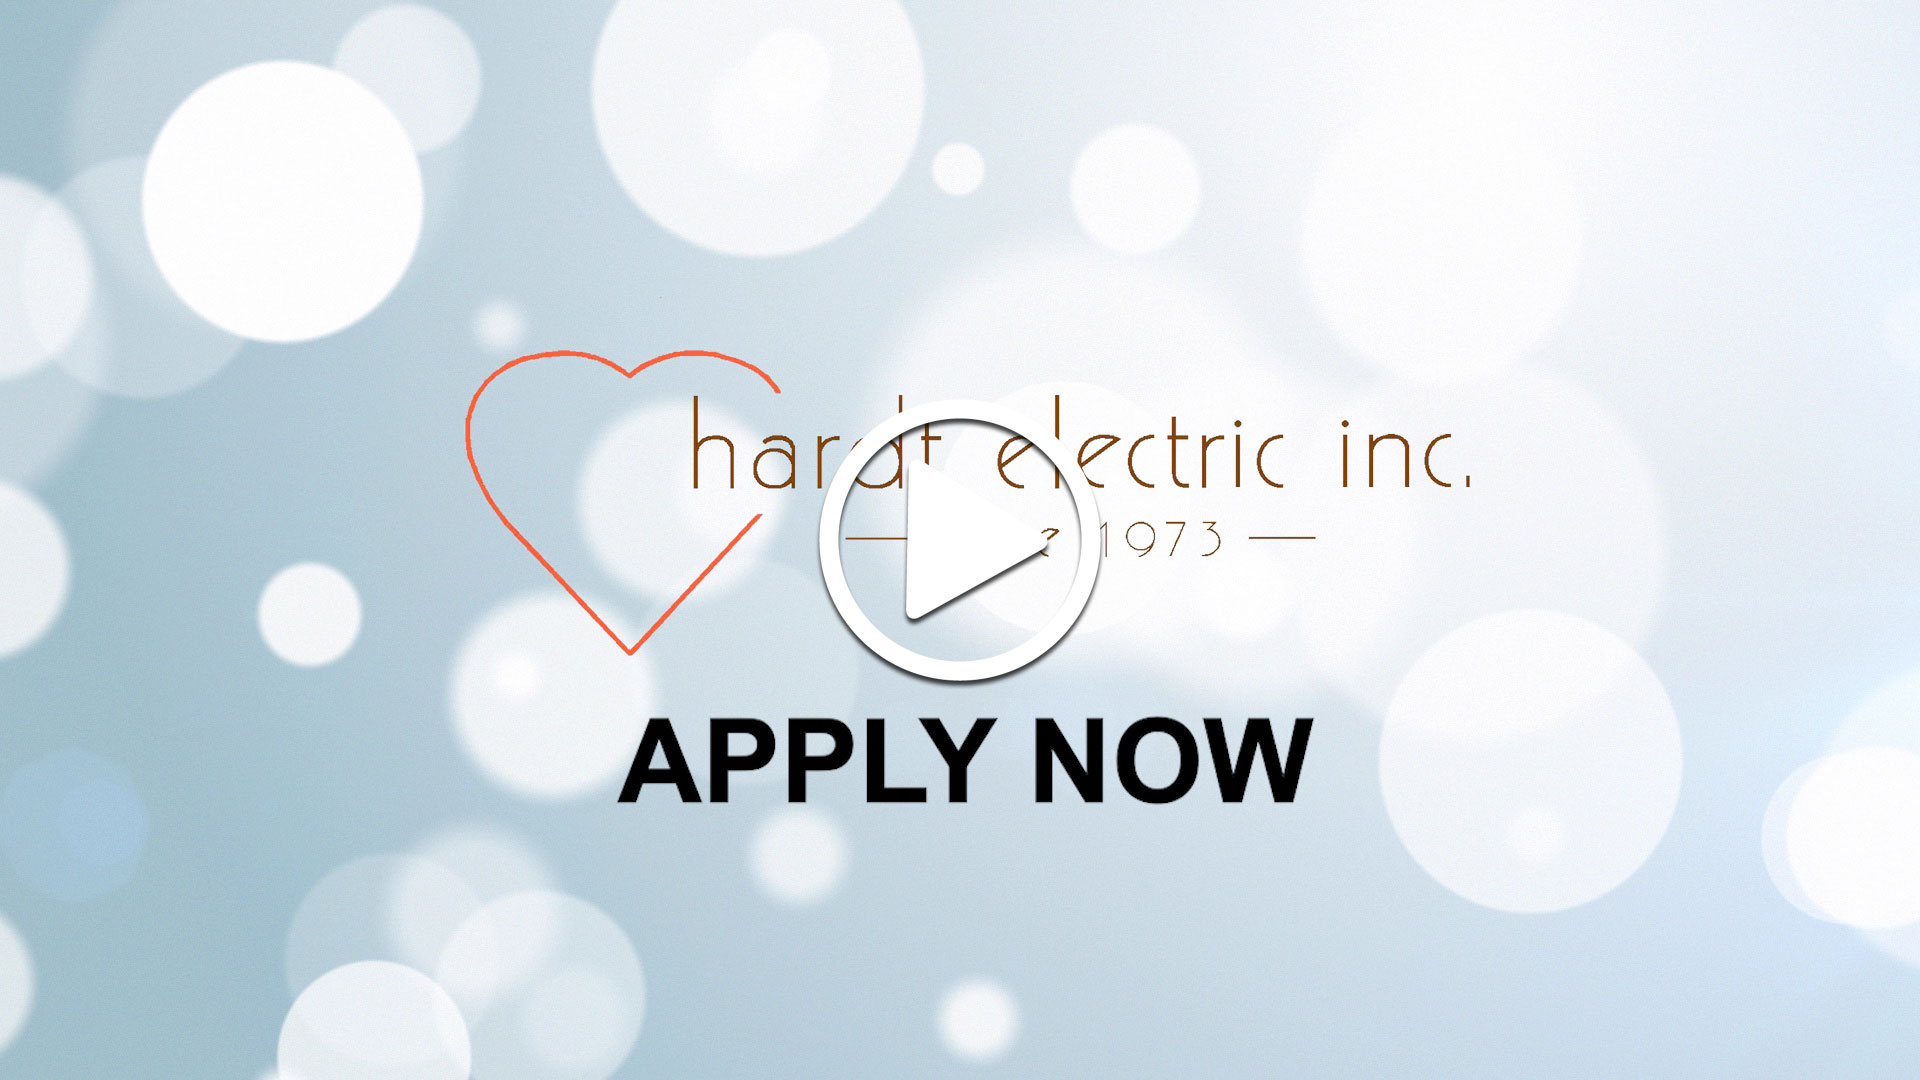 Watch our careers video for available job opening Senior Project Manager in Chicago, Illinois